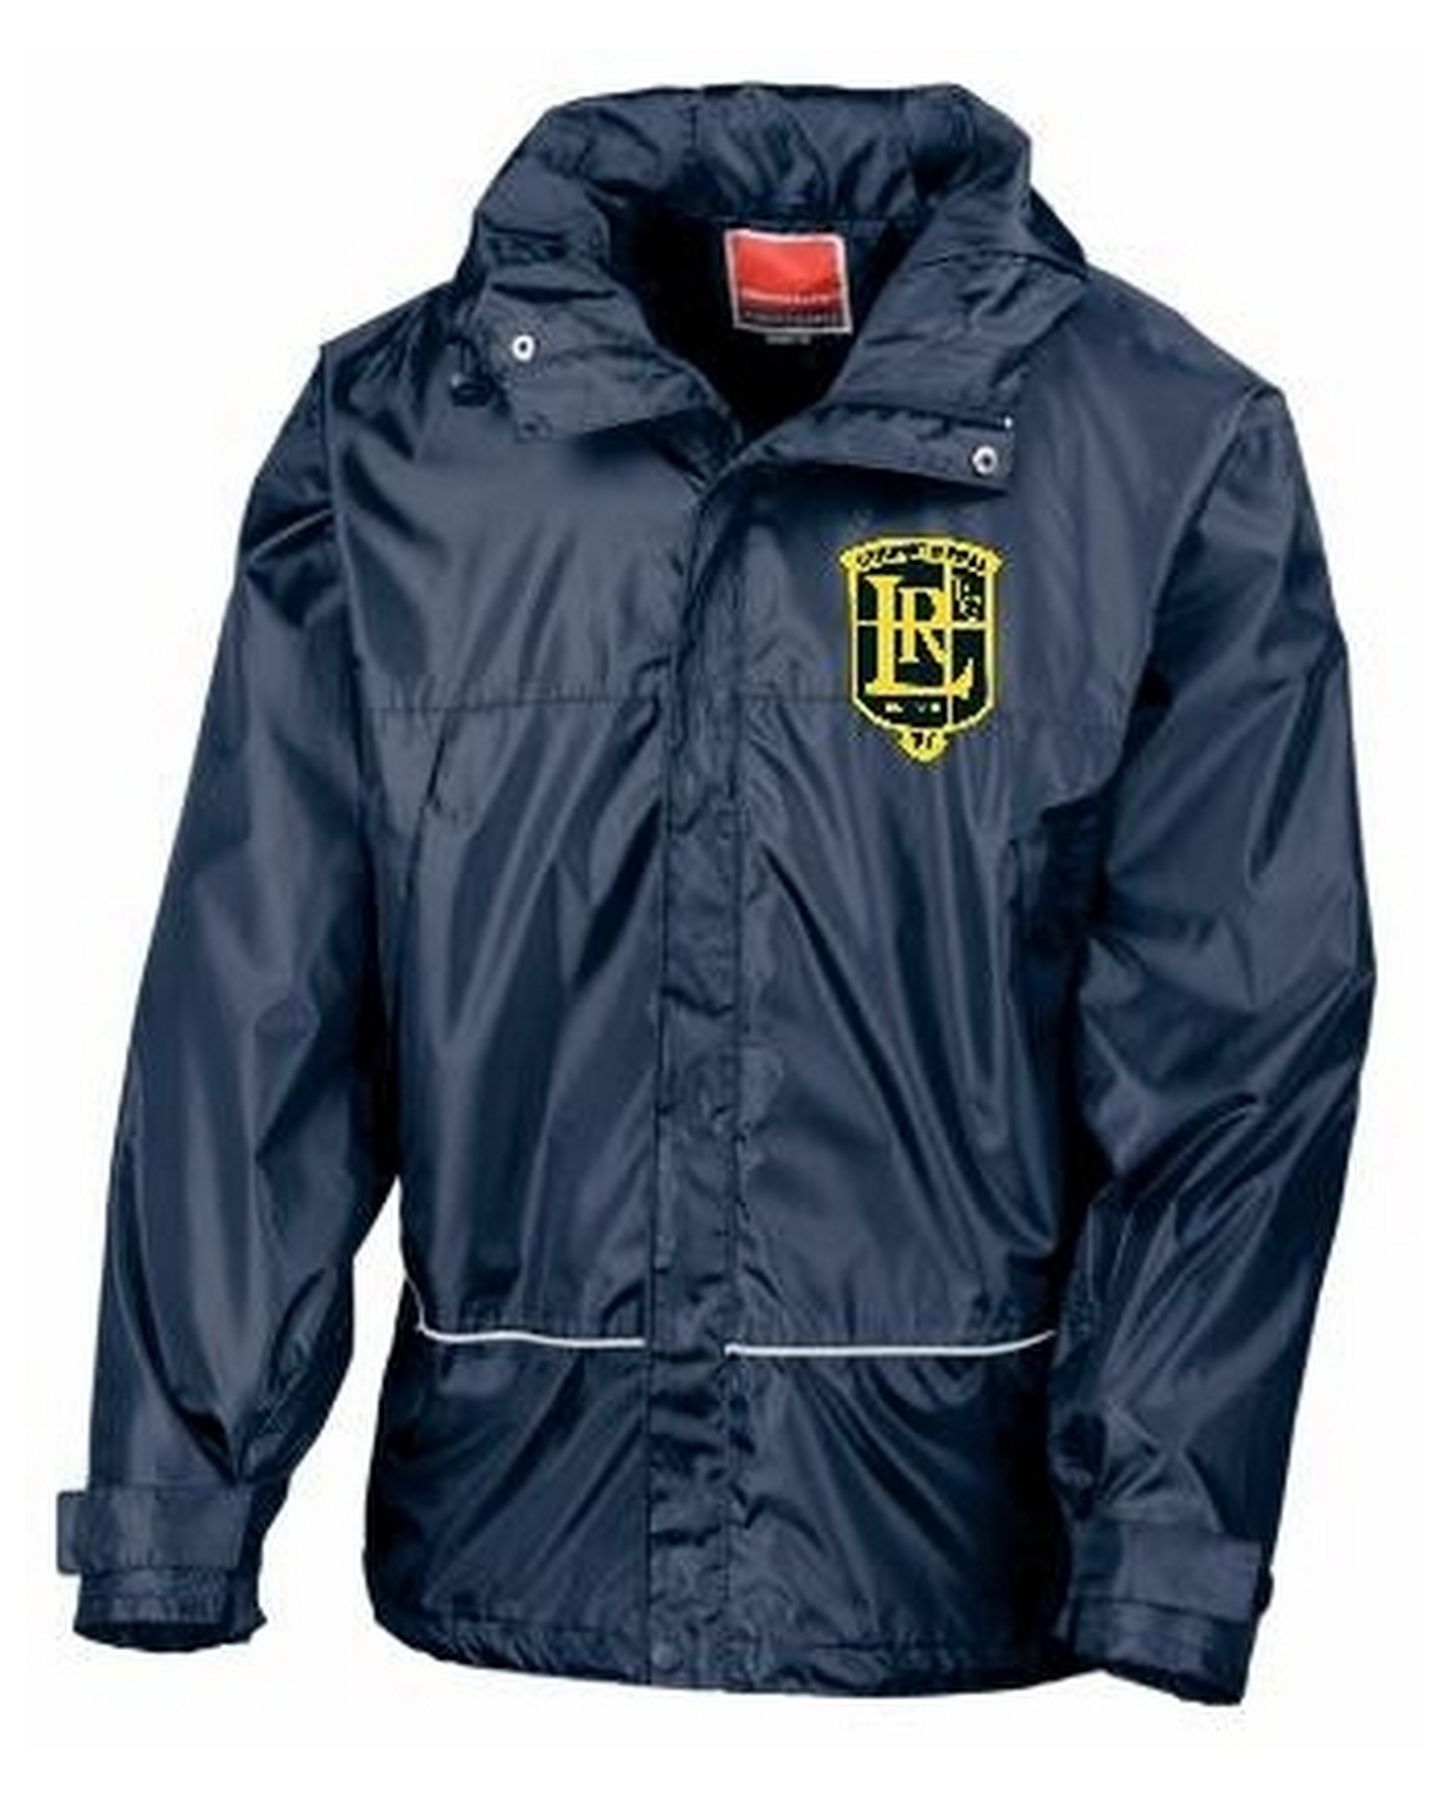 Littleport Rangers – Waterproof Jacket Adult